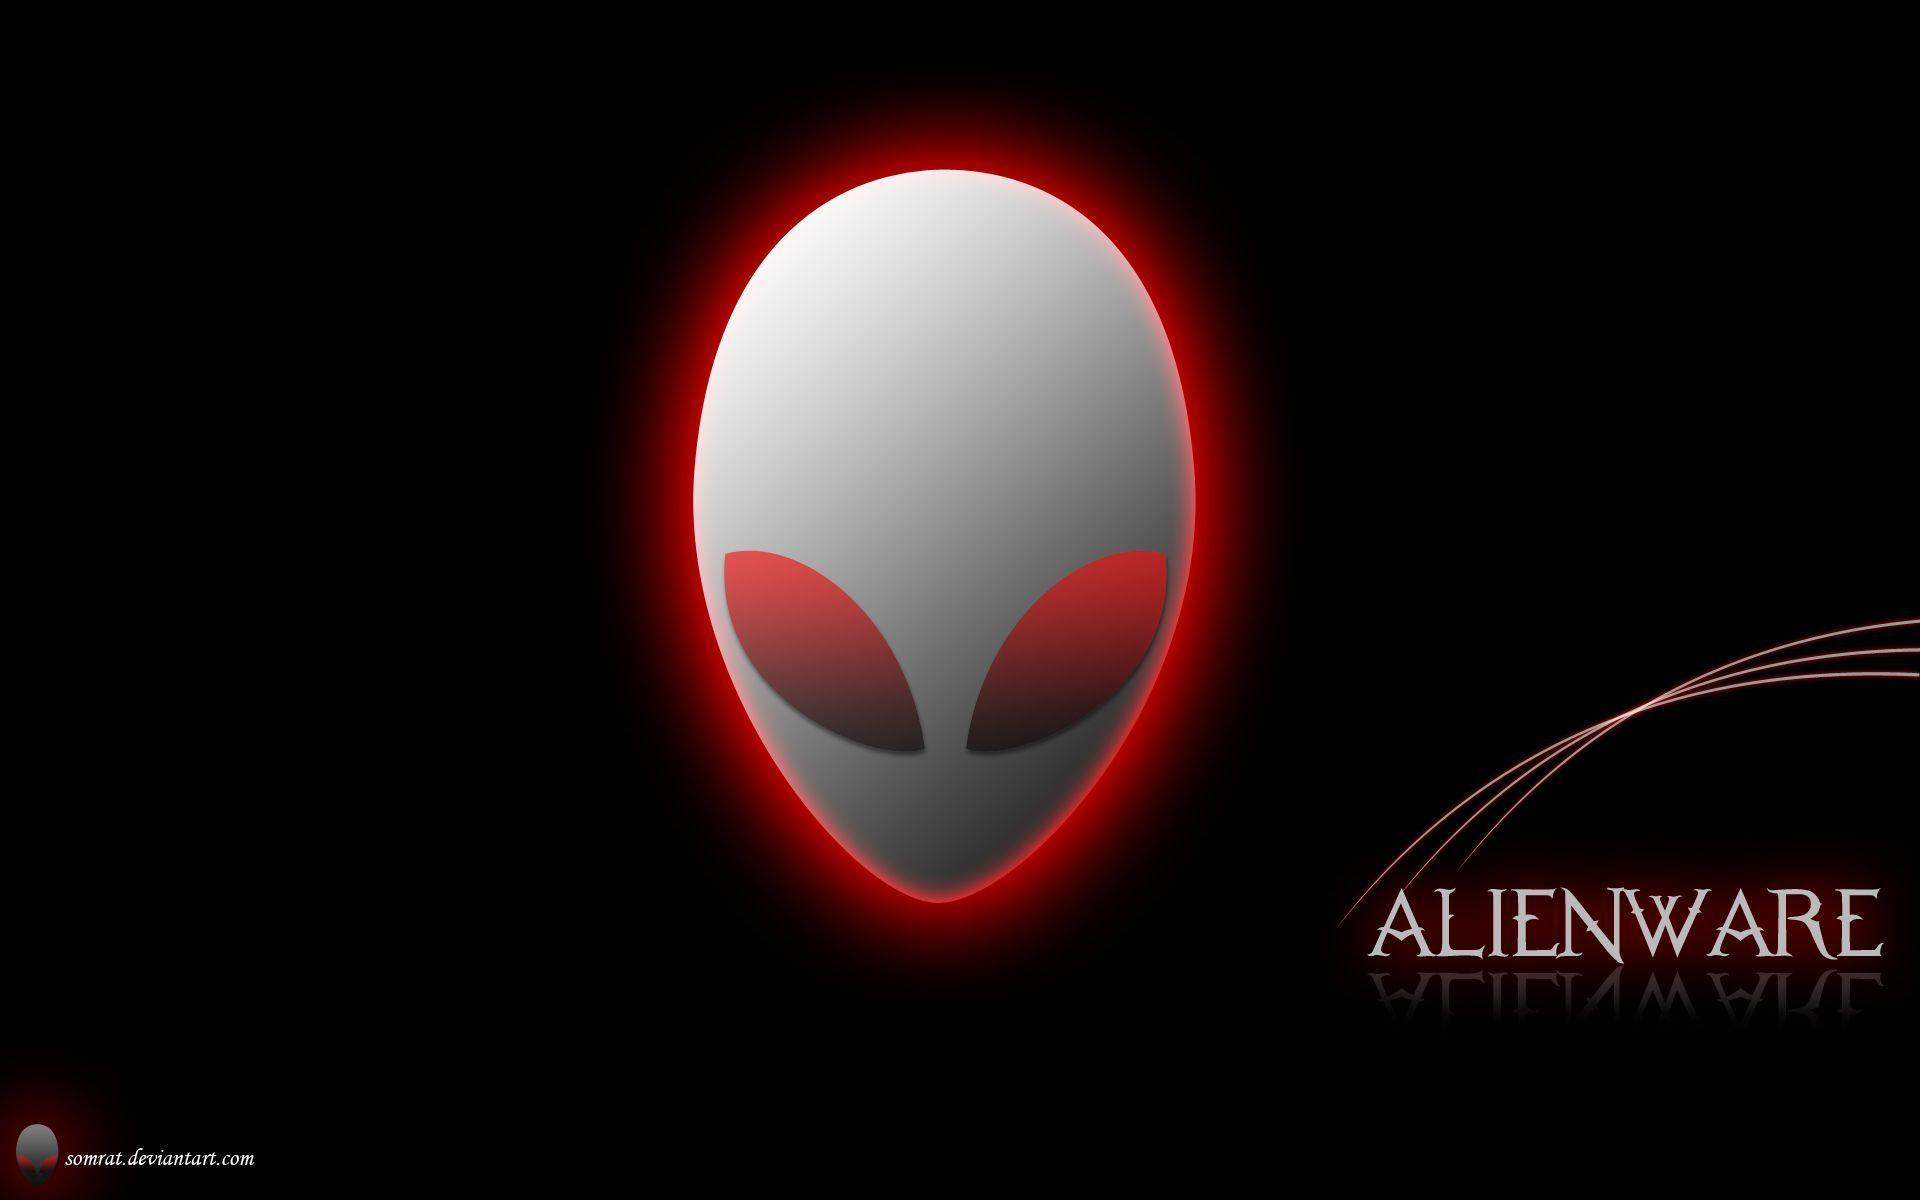 alienware wallpapers red - photo #11